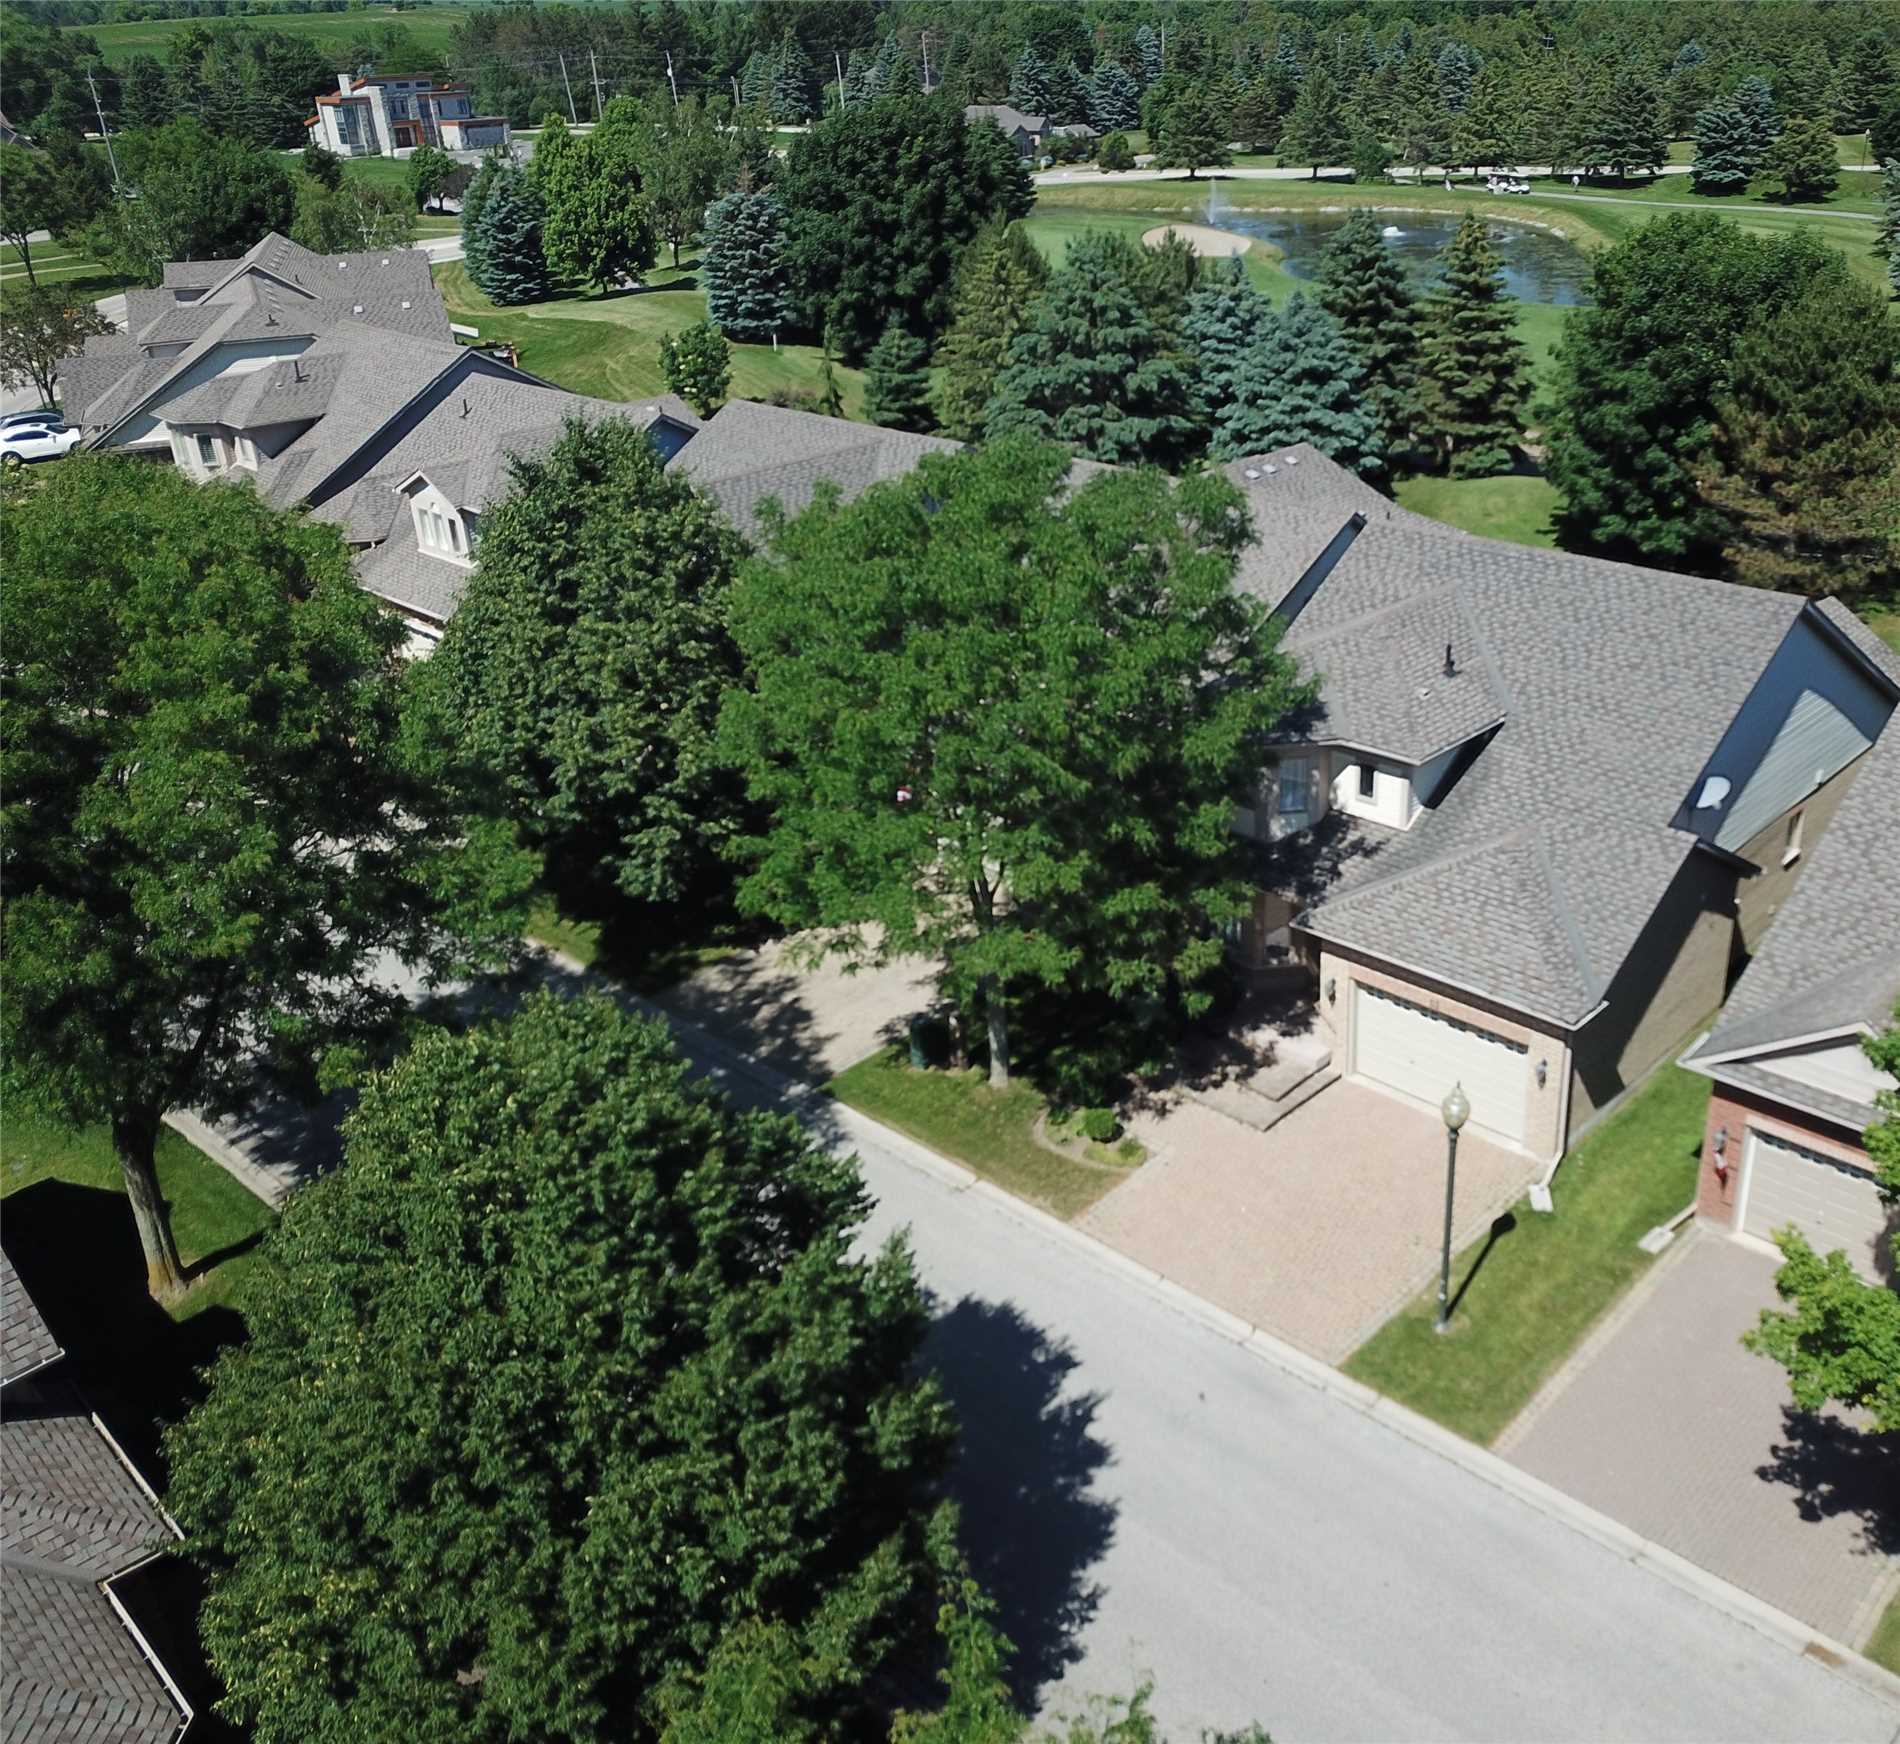 13 Sunset Blvd, New Tecumseth N4507366